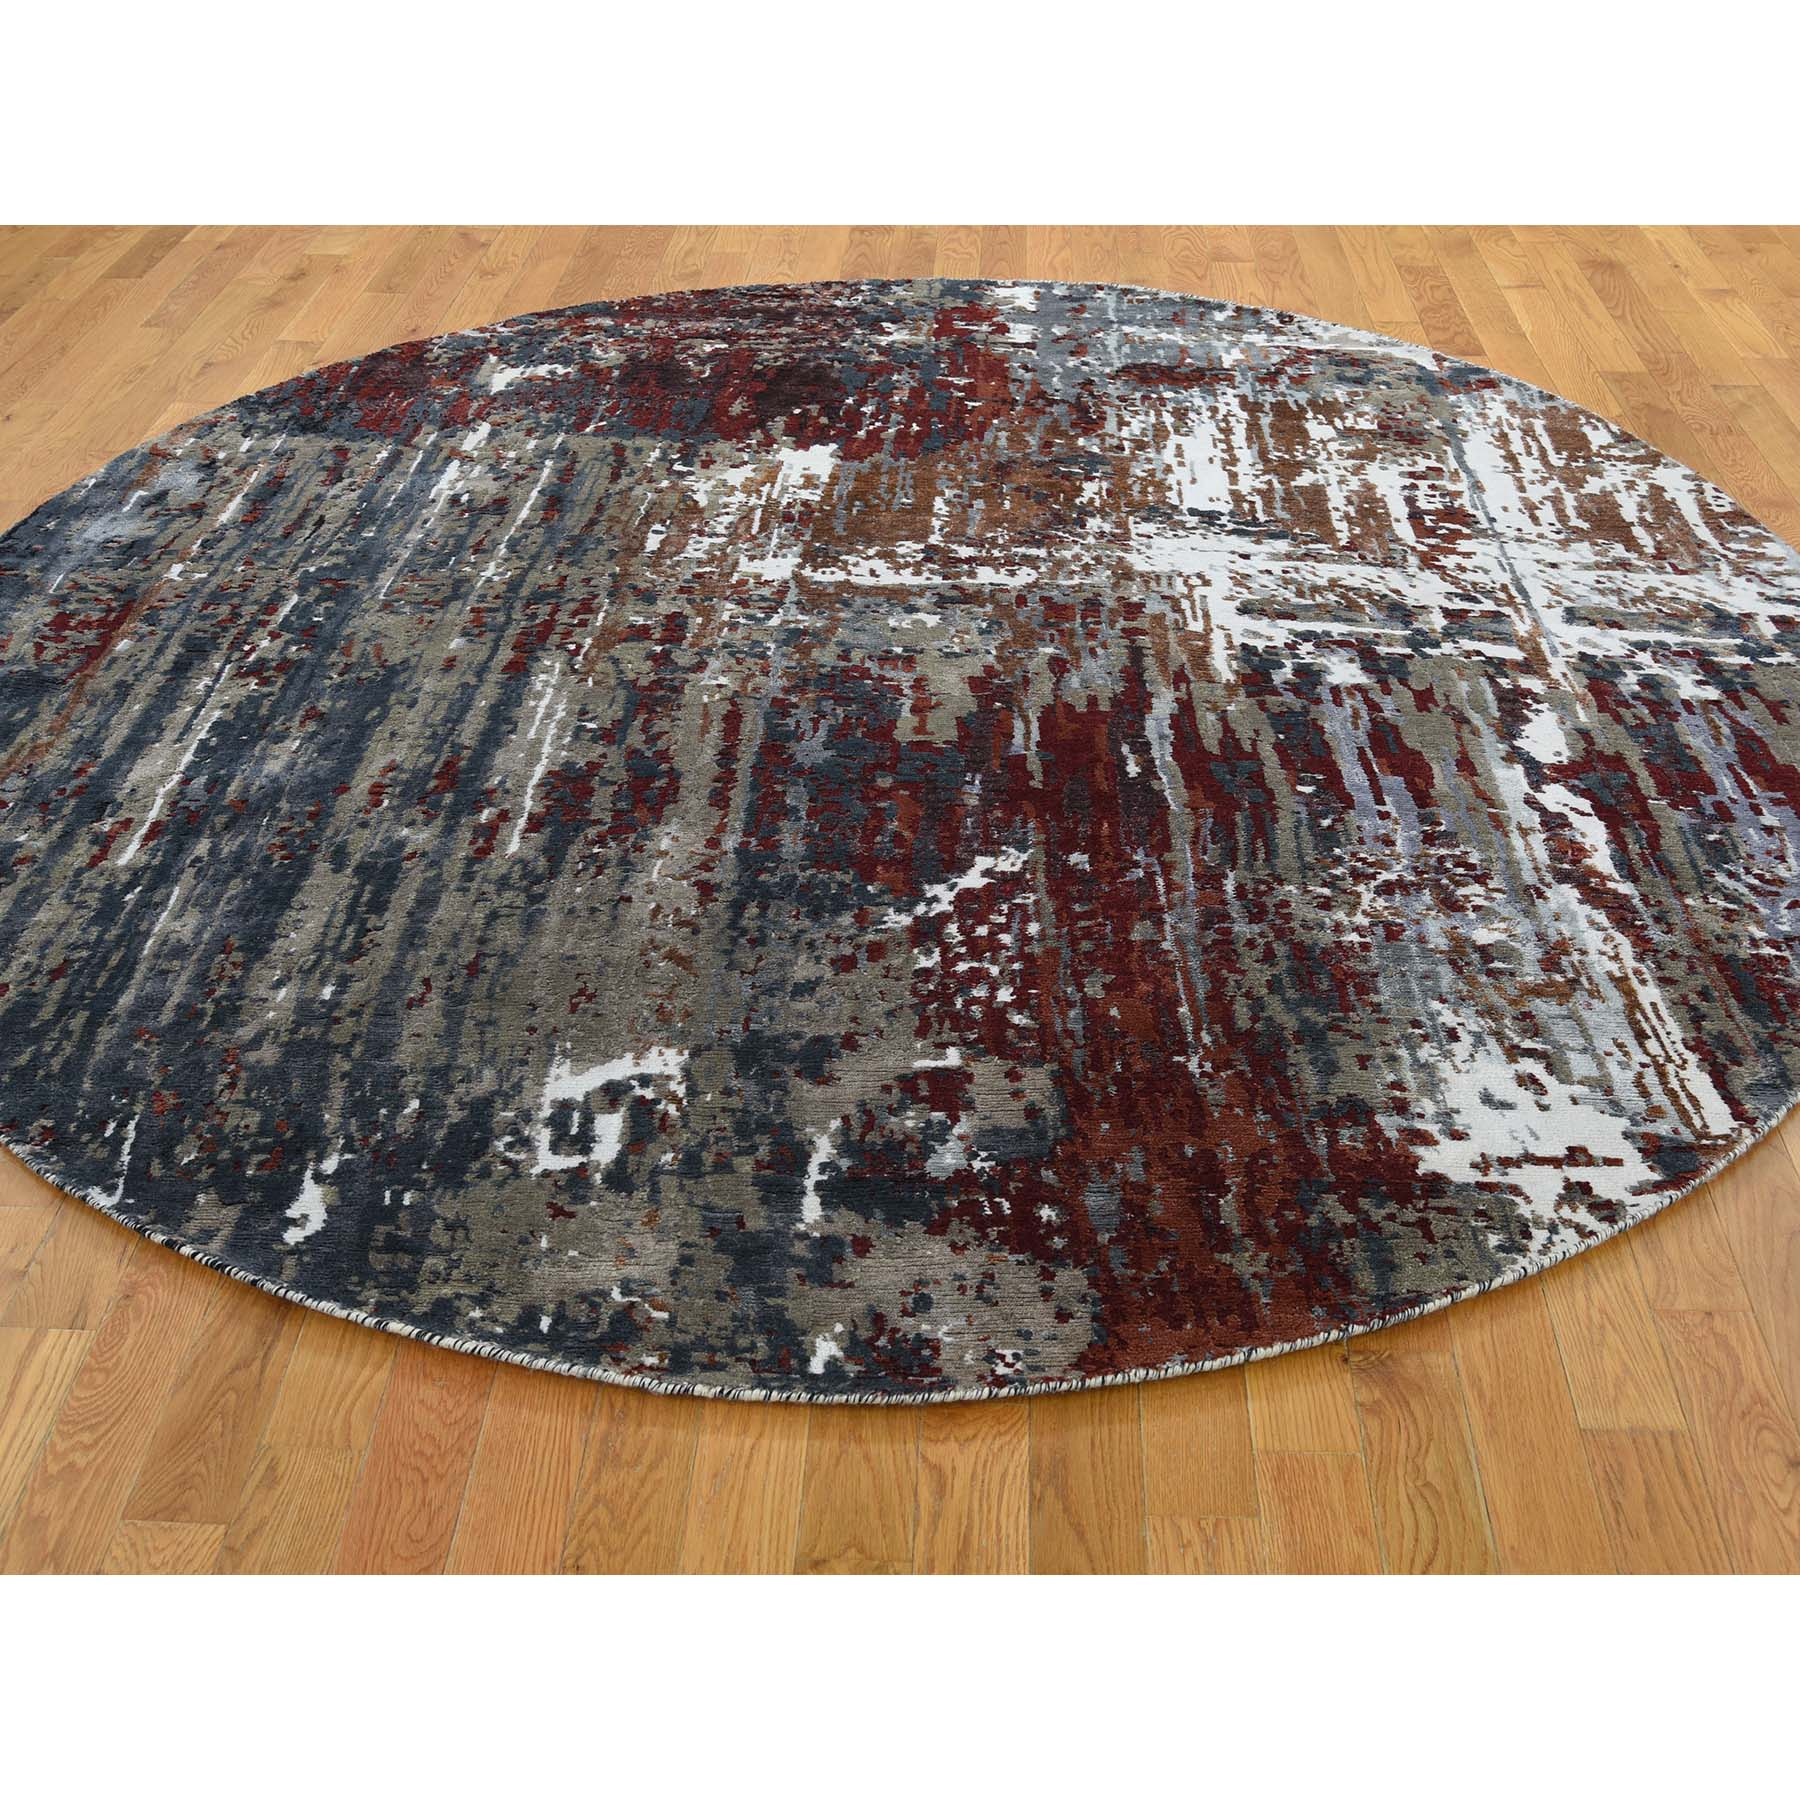 8-x8- Wool And Silk Hi-Low Pile Round Abstract Design Hand-Knotted Oriental Rug